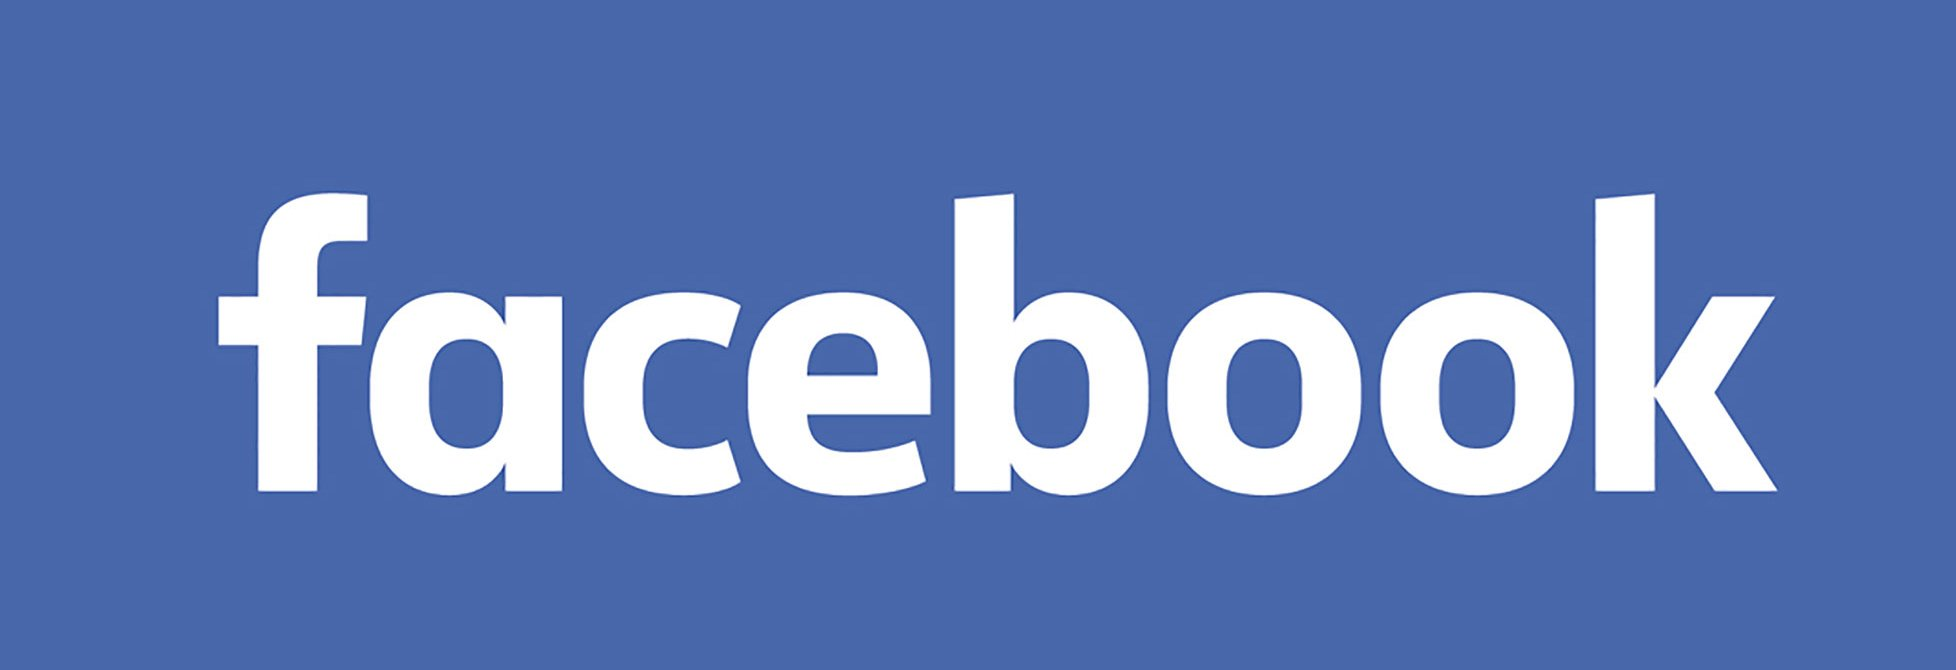 Facebook Logo, Facebook Symbol Meaning, History and Evolution